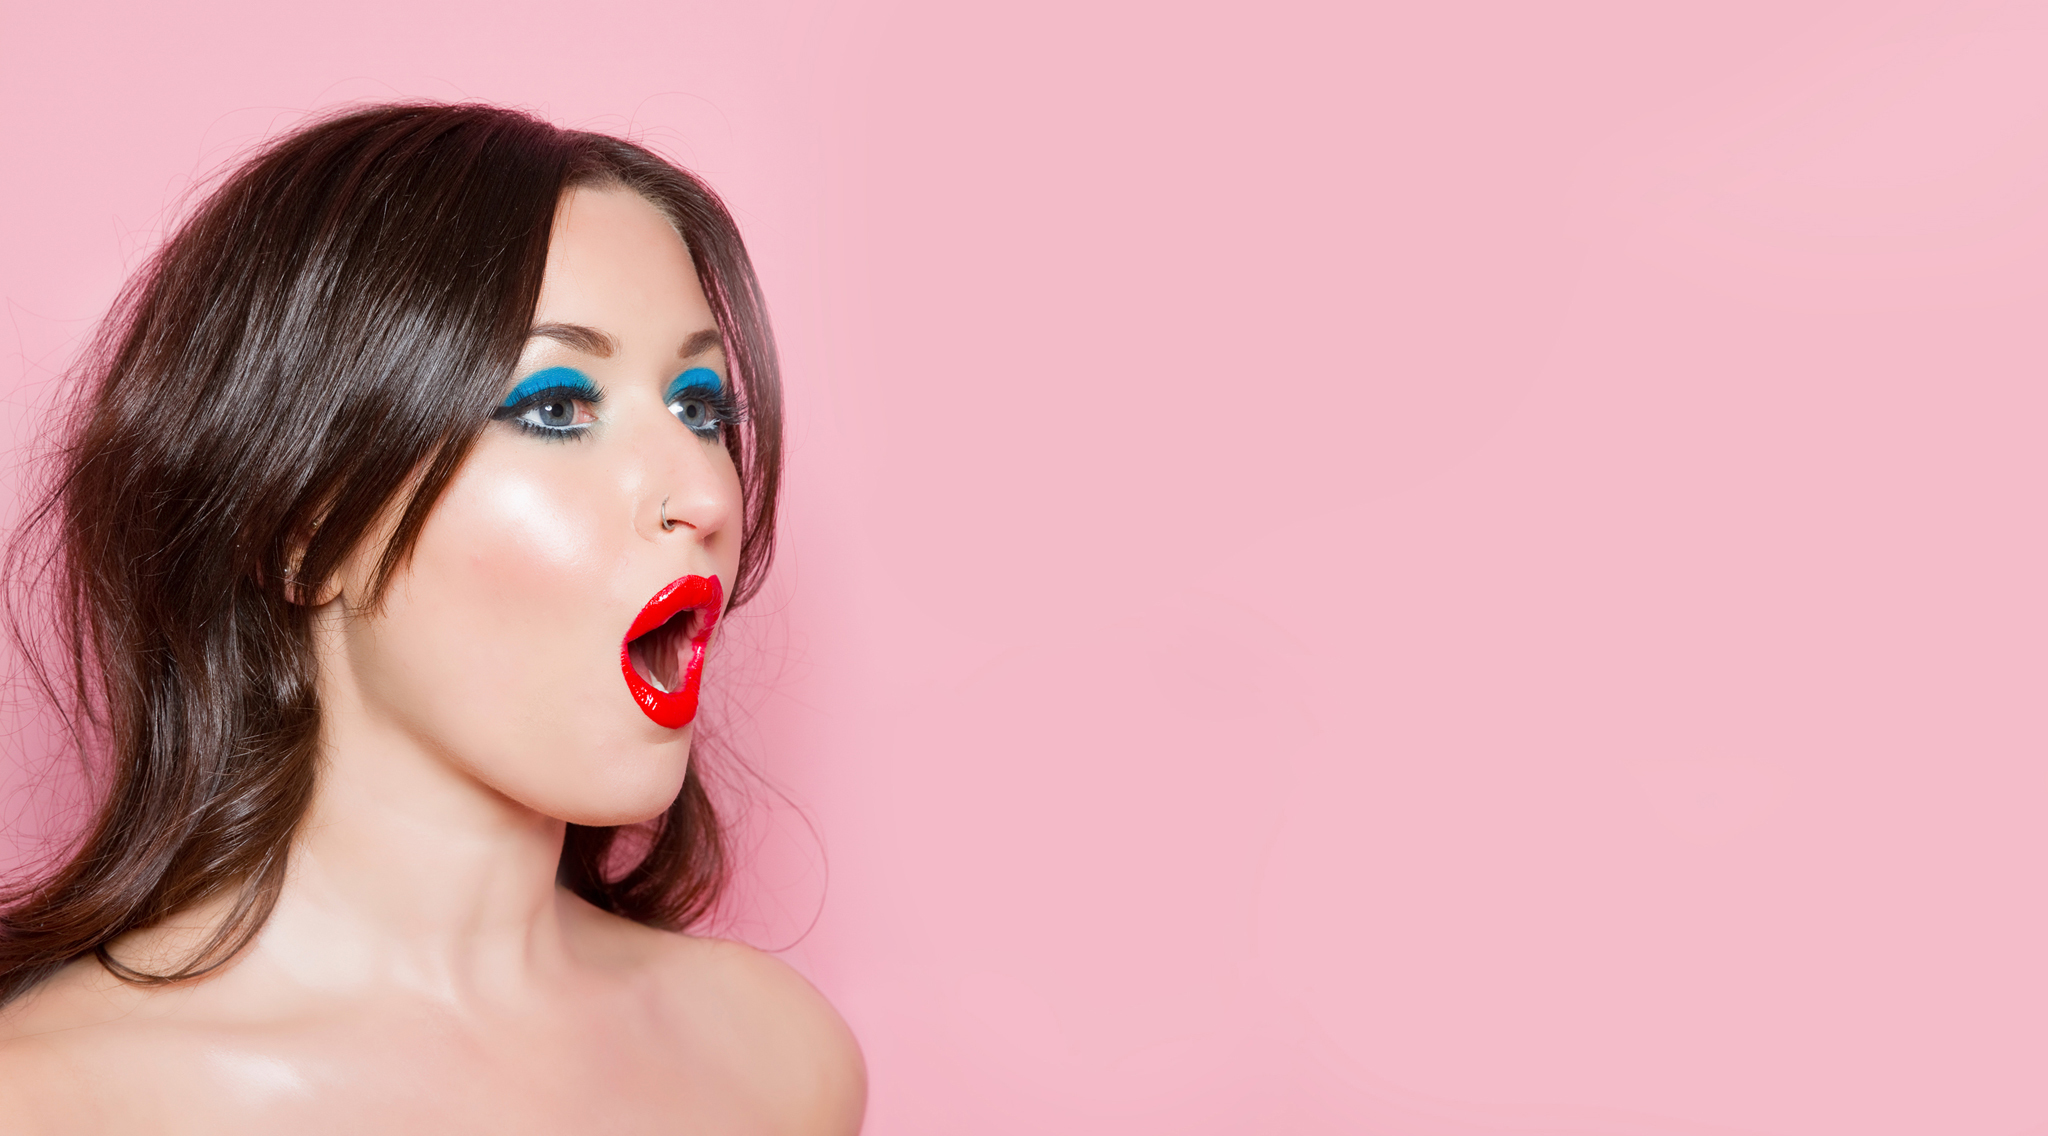 A London theatre is holding a sex festival